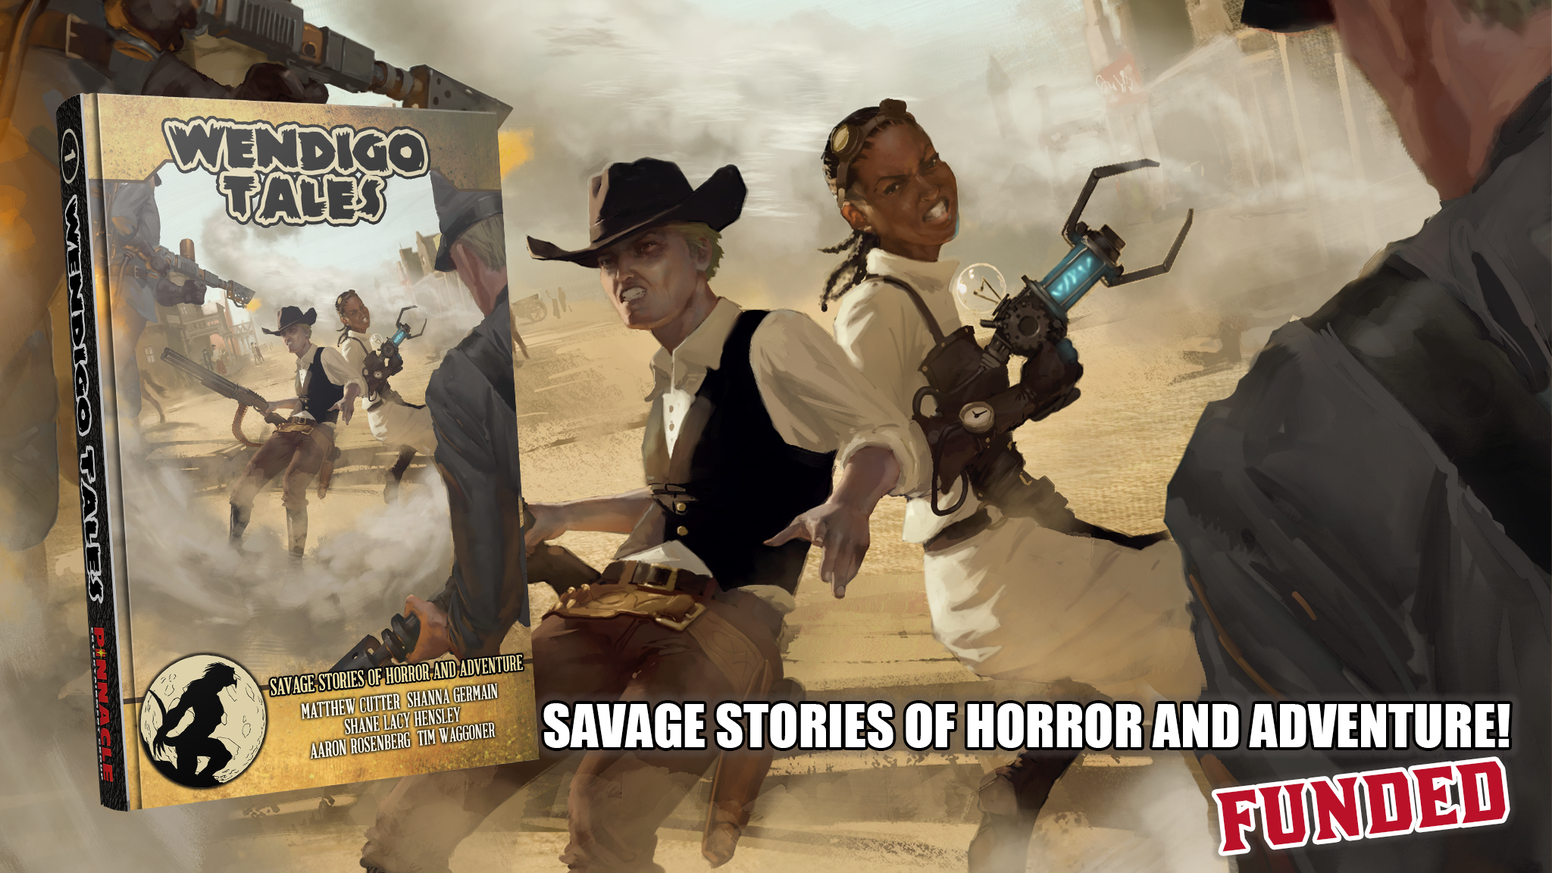 Stories of horror and adventure by today's top authors, set in Pinnacle's Savage Worlds!